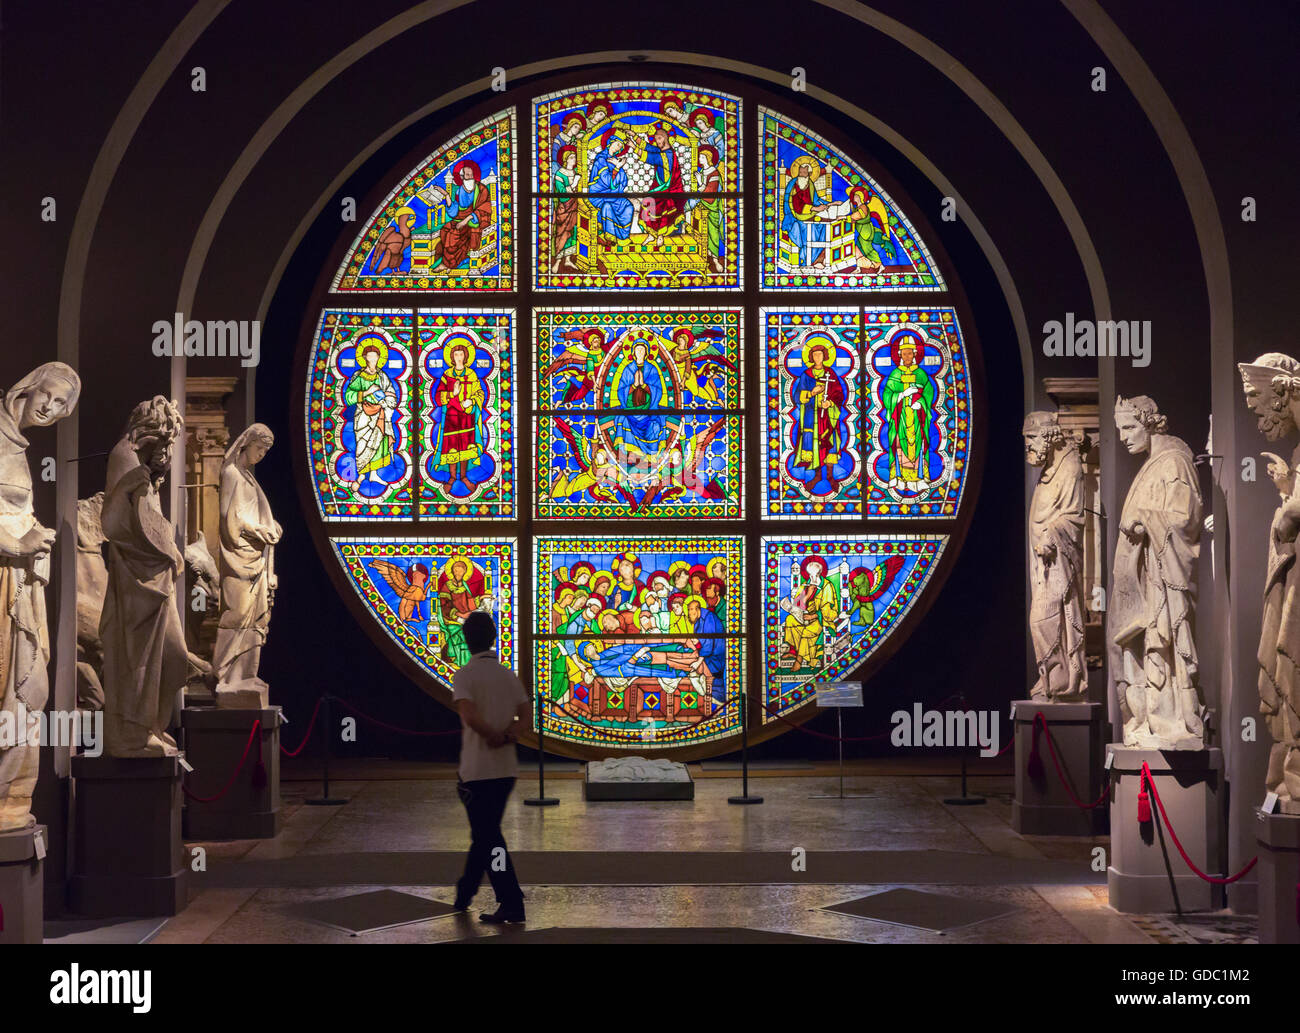 Siena, Siena Province, Tuscany, Italy.  Il Museo dell'Opera del Duomo. Cathedral Museum. Stained glass window. Stock Photo